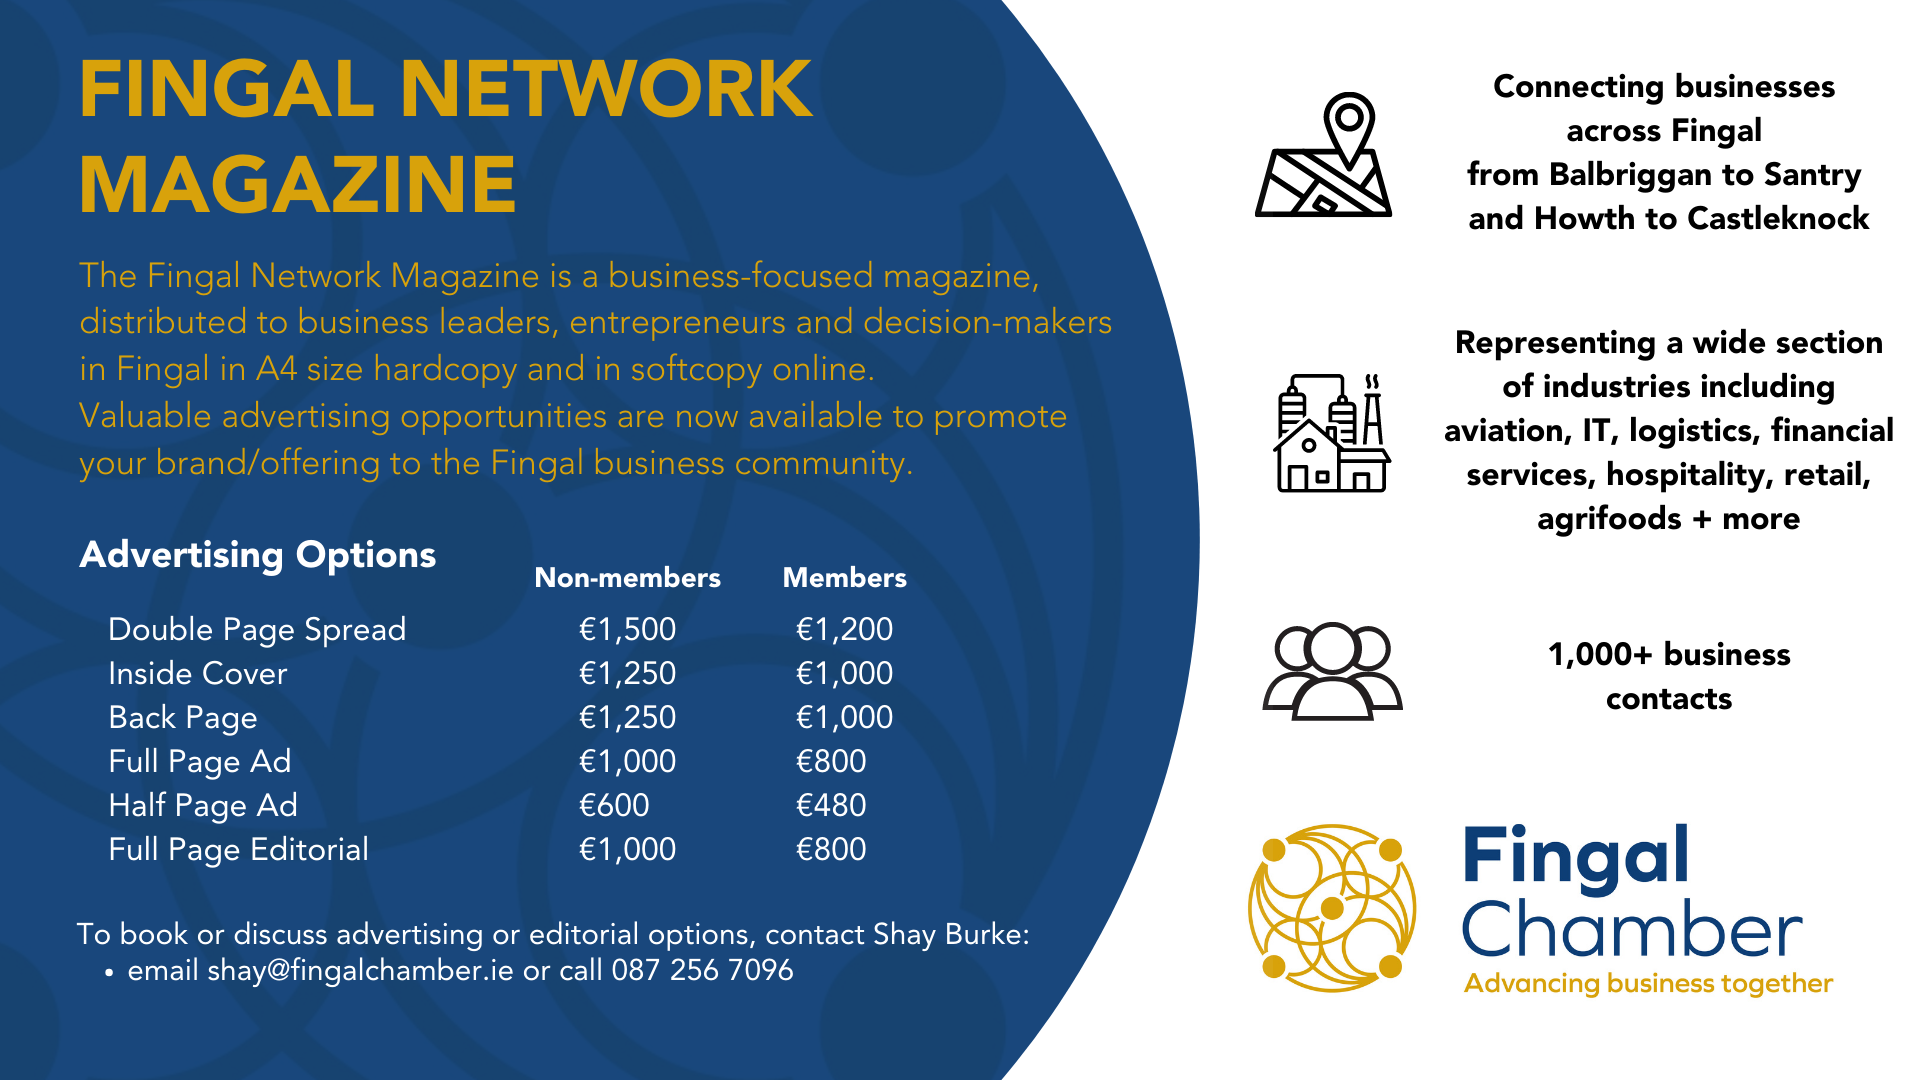 Fingal-Network-Magazine---Rate-Card---Jan-2021.png